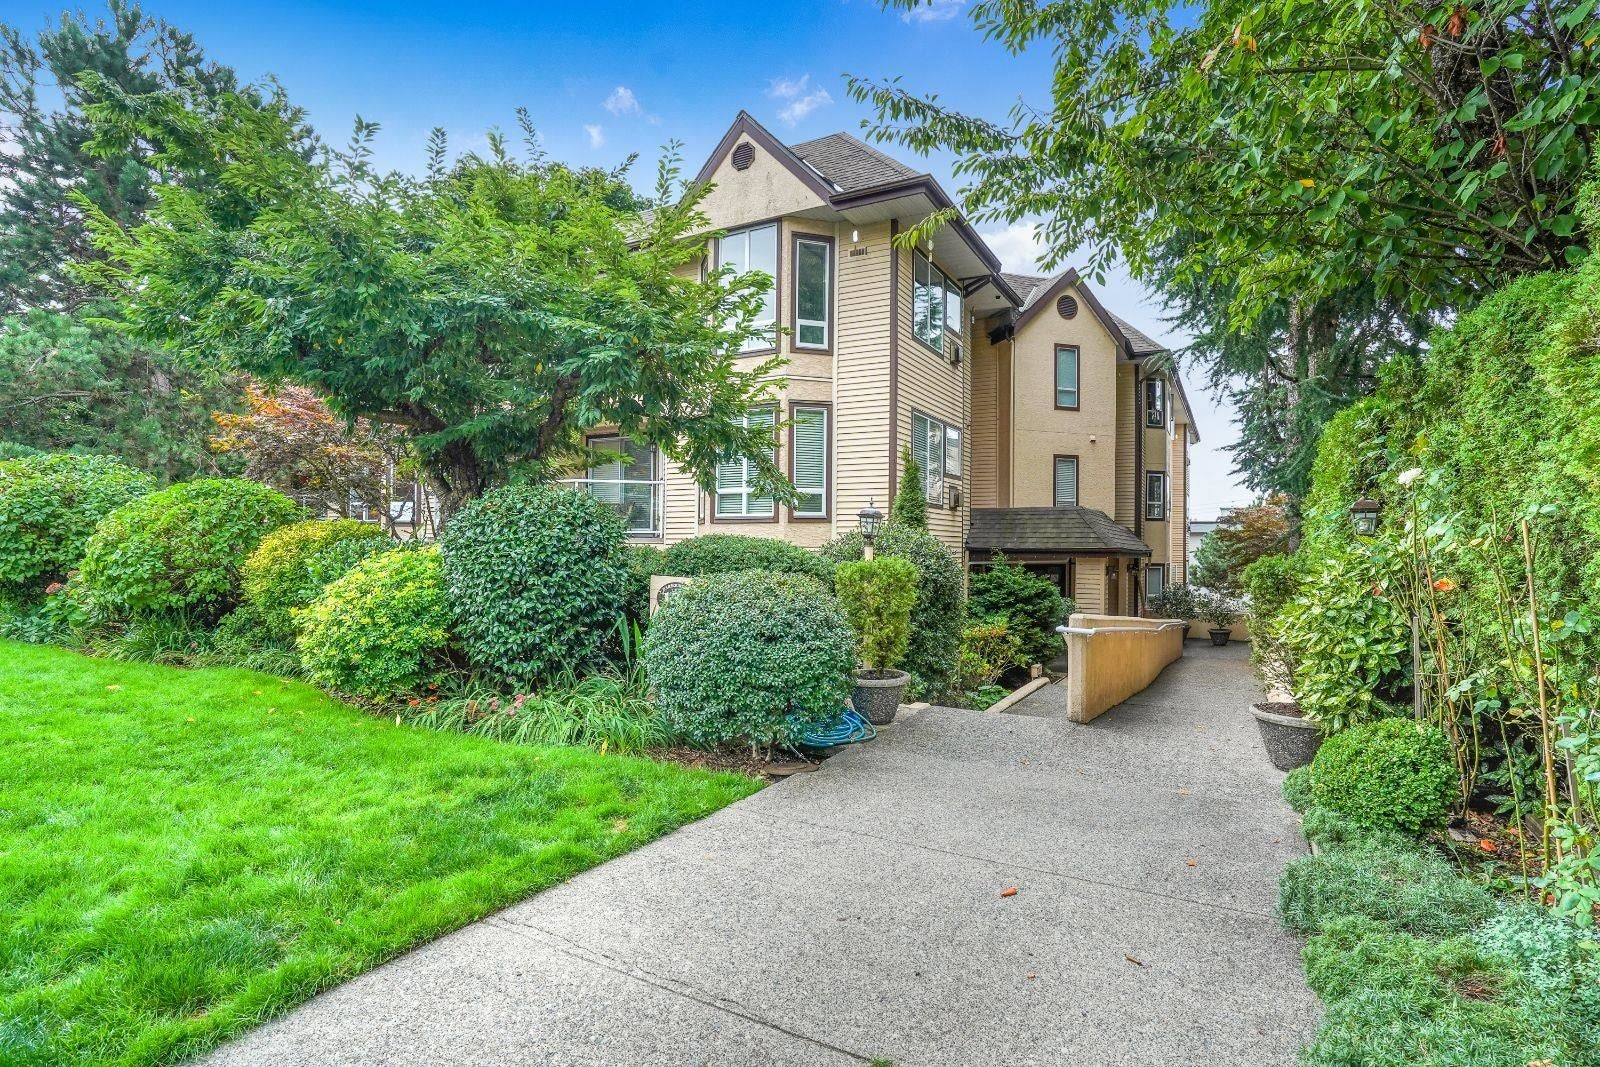 101 123 E 6TH STREET - Lower Lonsdale Apartment/Condo for sale, 1 Bedroom (R2626037)